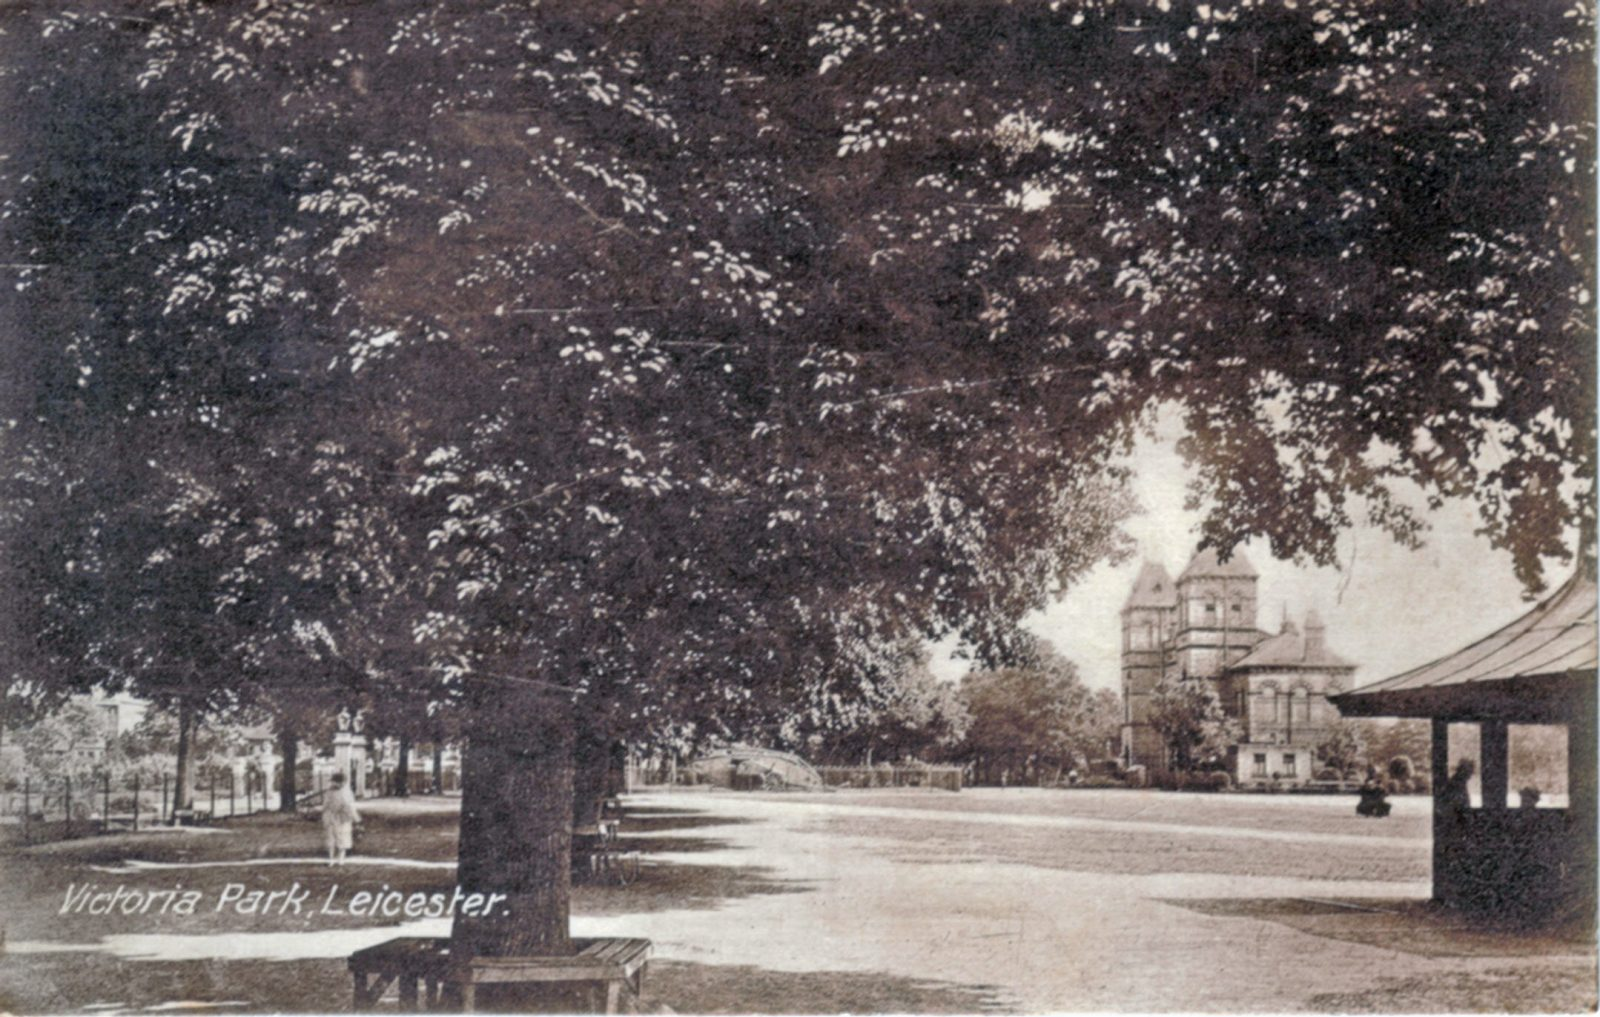 Victoria Park, Leicester. 1901-1920: Broad walk with pavilion. Posted 1918-21 (File:1068)